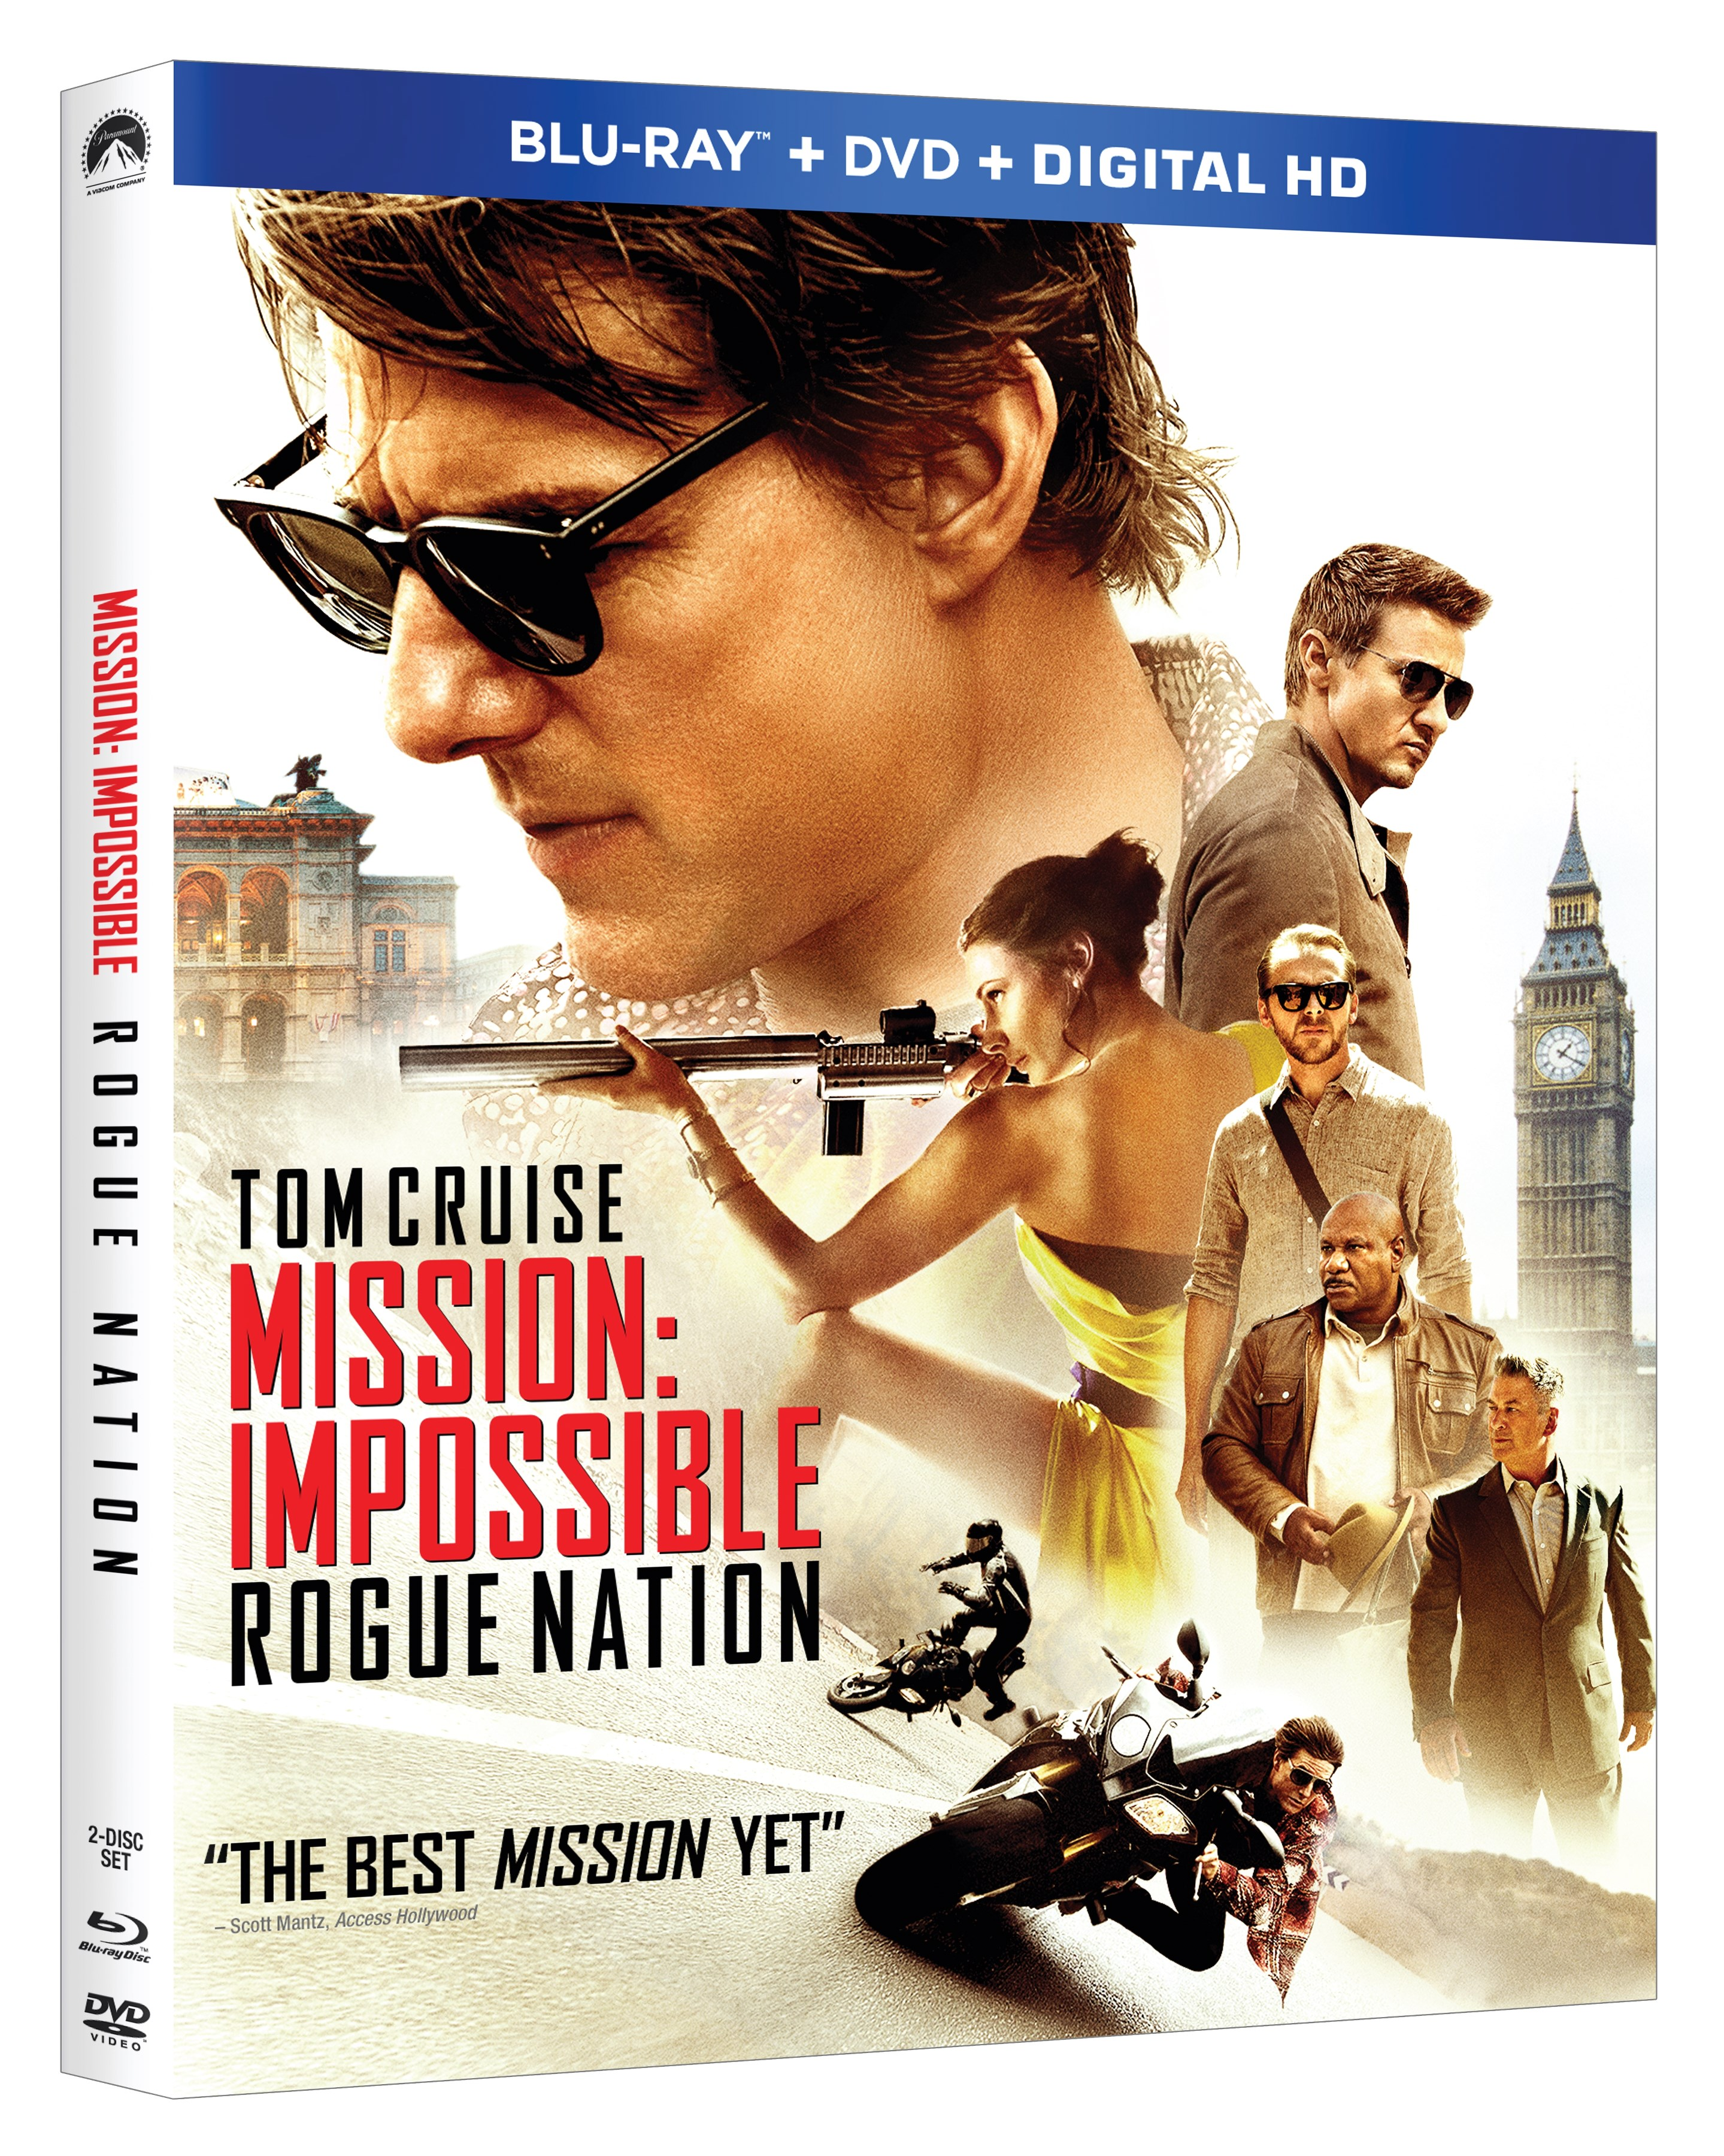 Mission Impossible Rogue Nation Blu-ray Review